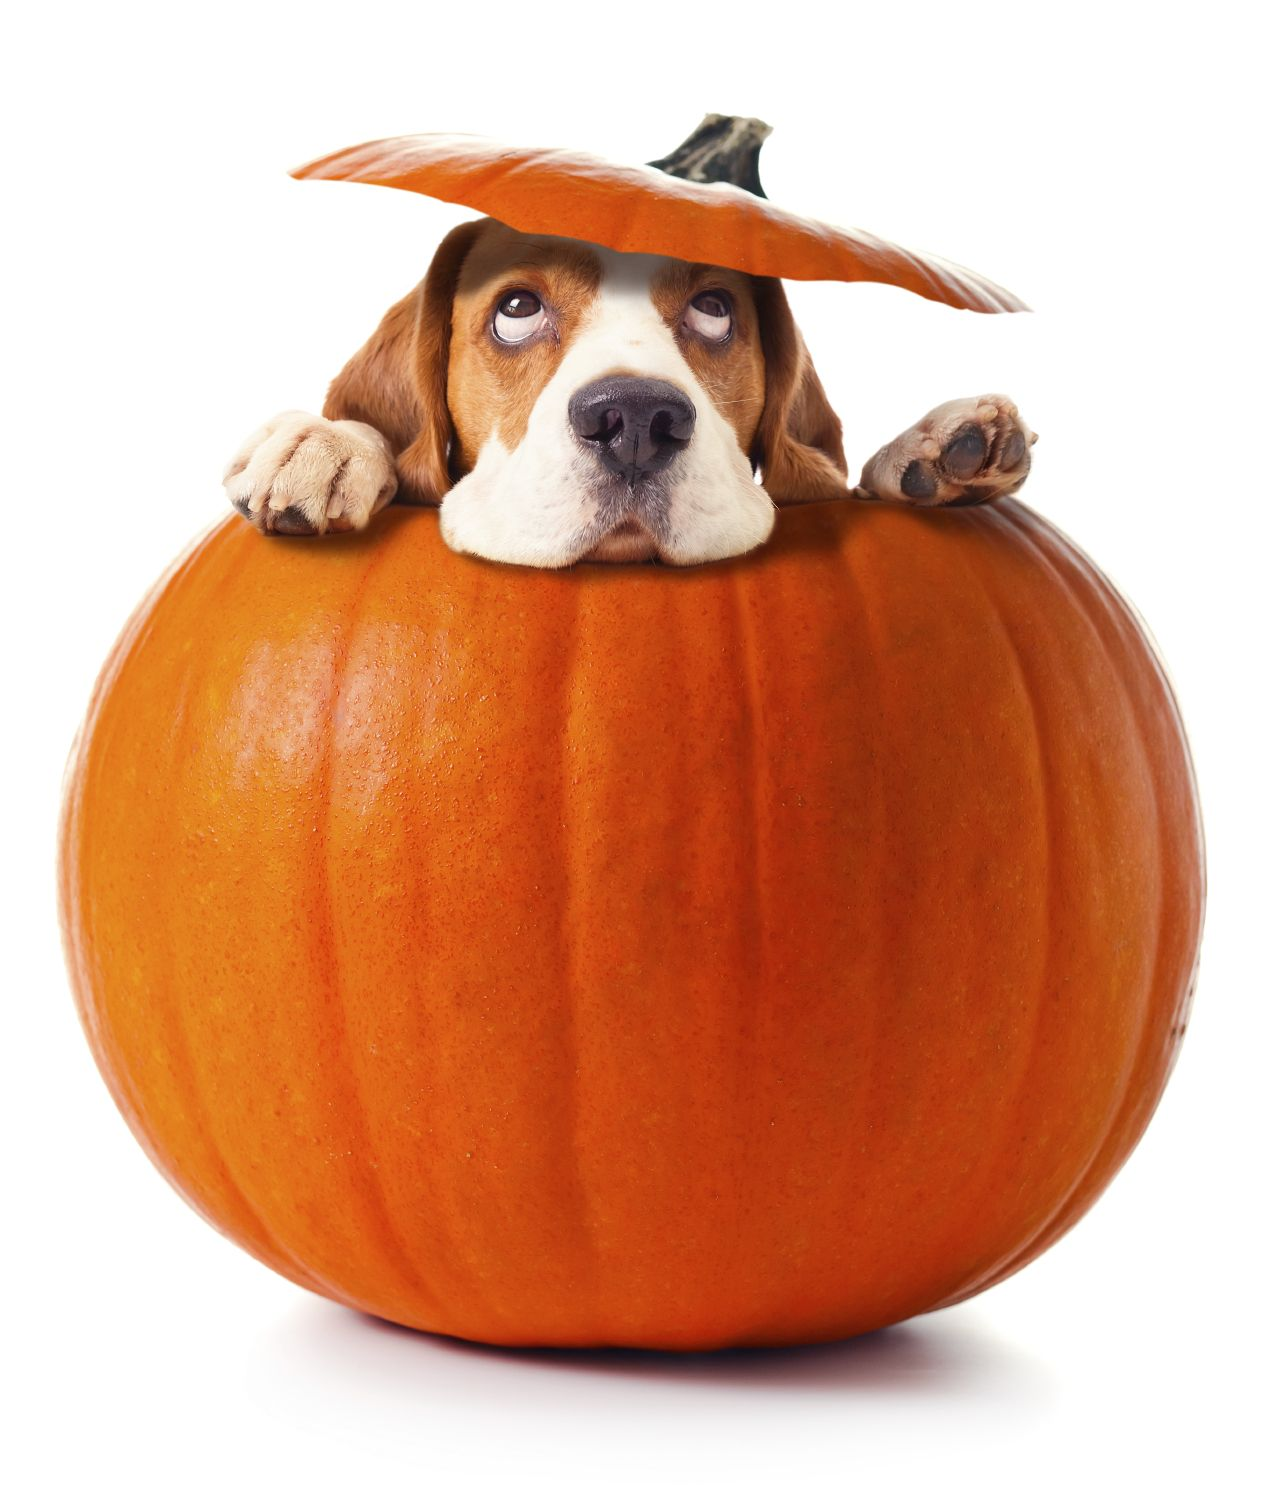 Pictures Of Canned Pumpkin For Dogs